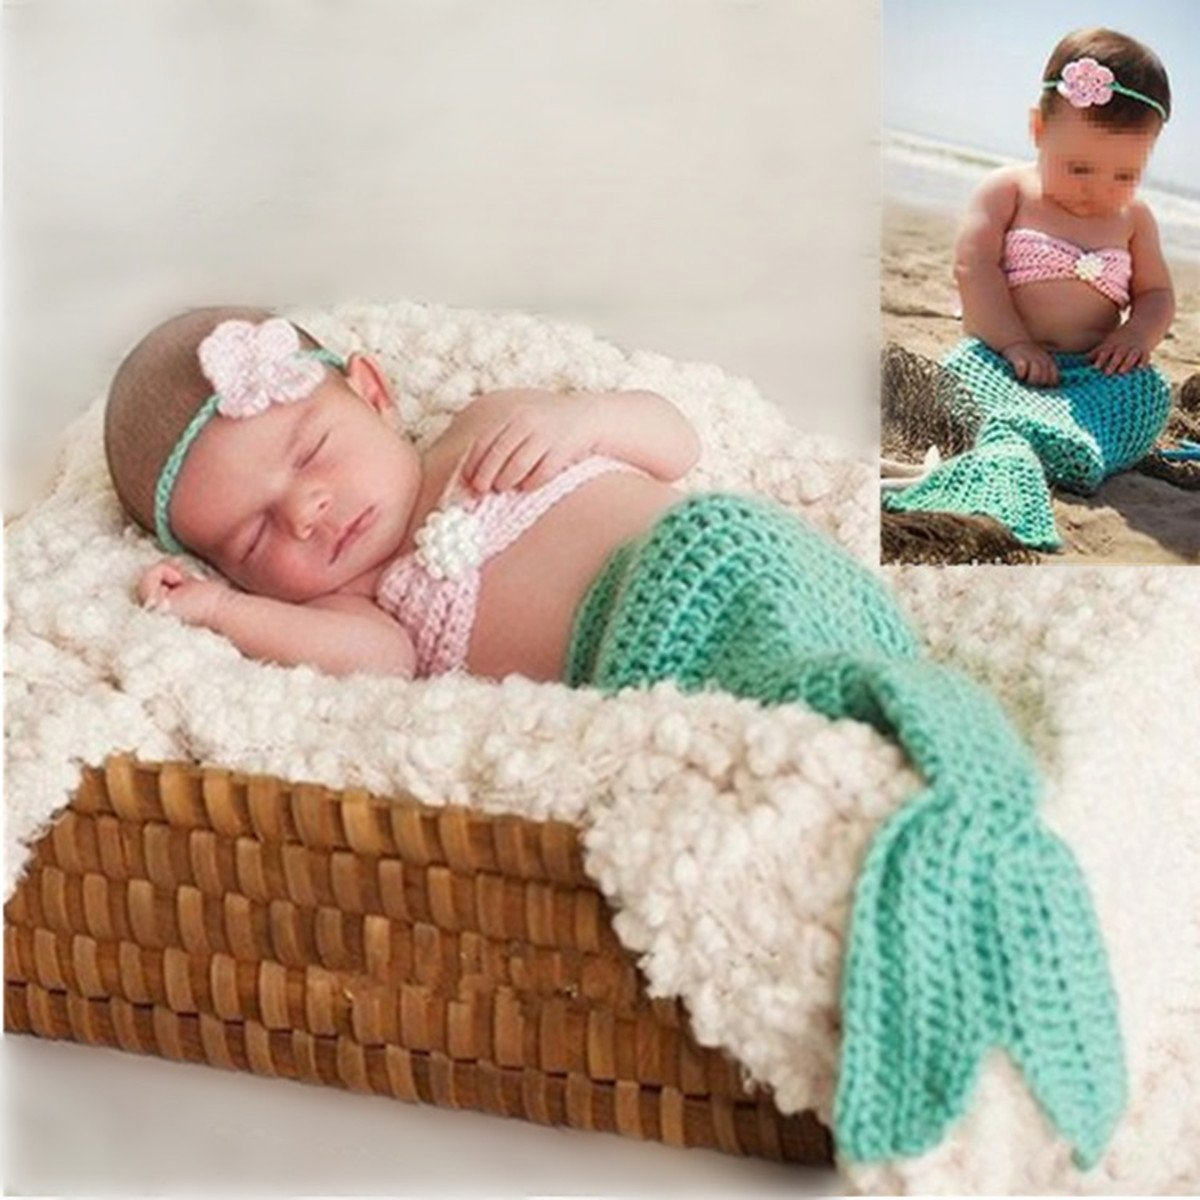 M&G House Newborn Photography | Baby Props Outfit | Photo Costume | Girls Handmade Crochet Mermaid Set (Headband Bra Tail) by M&G House